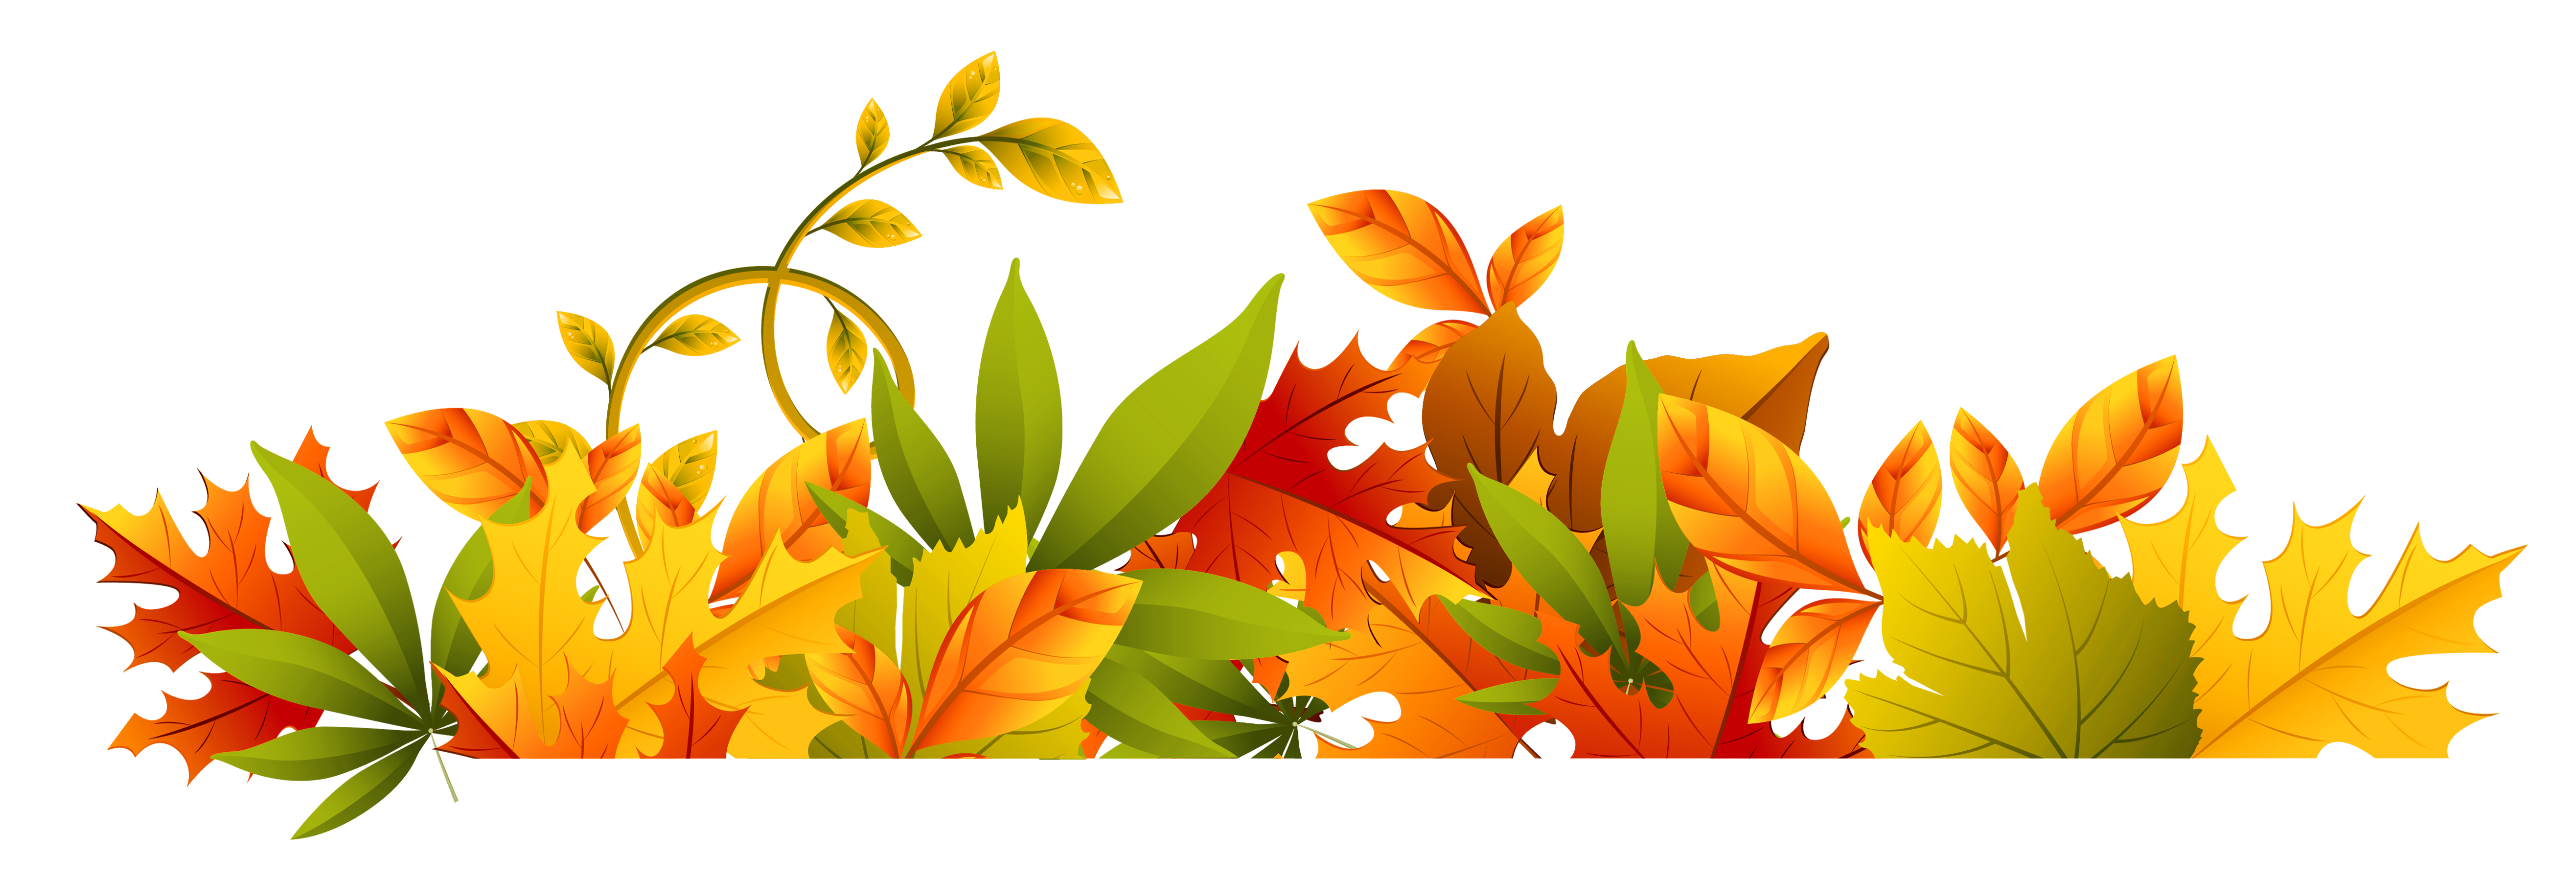 1000+ images about Bulletin Clipart - Autumn ...